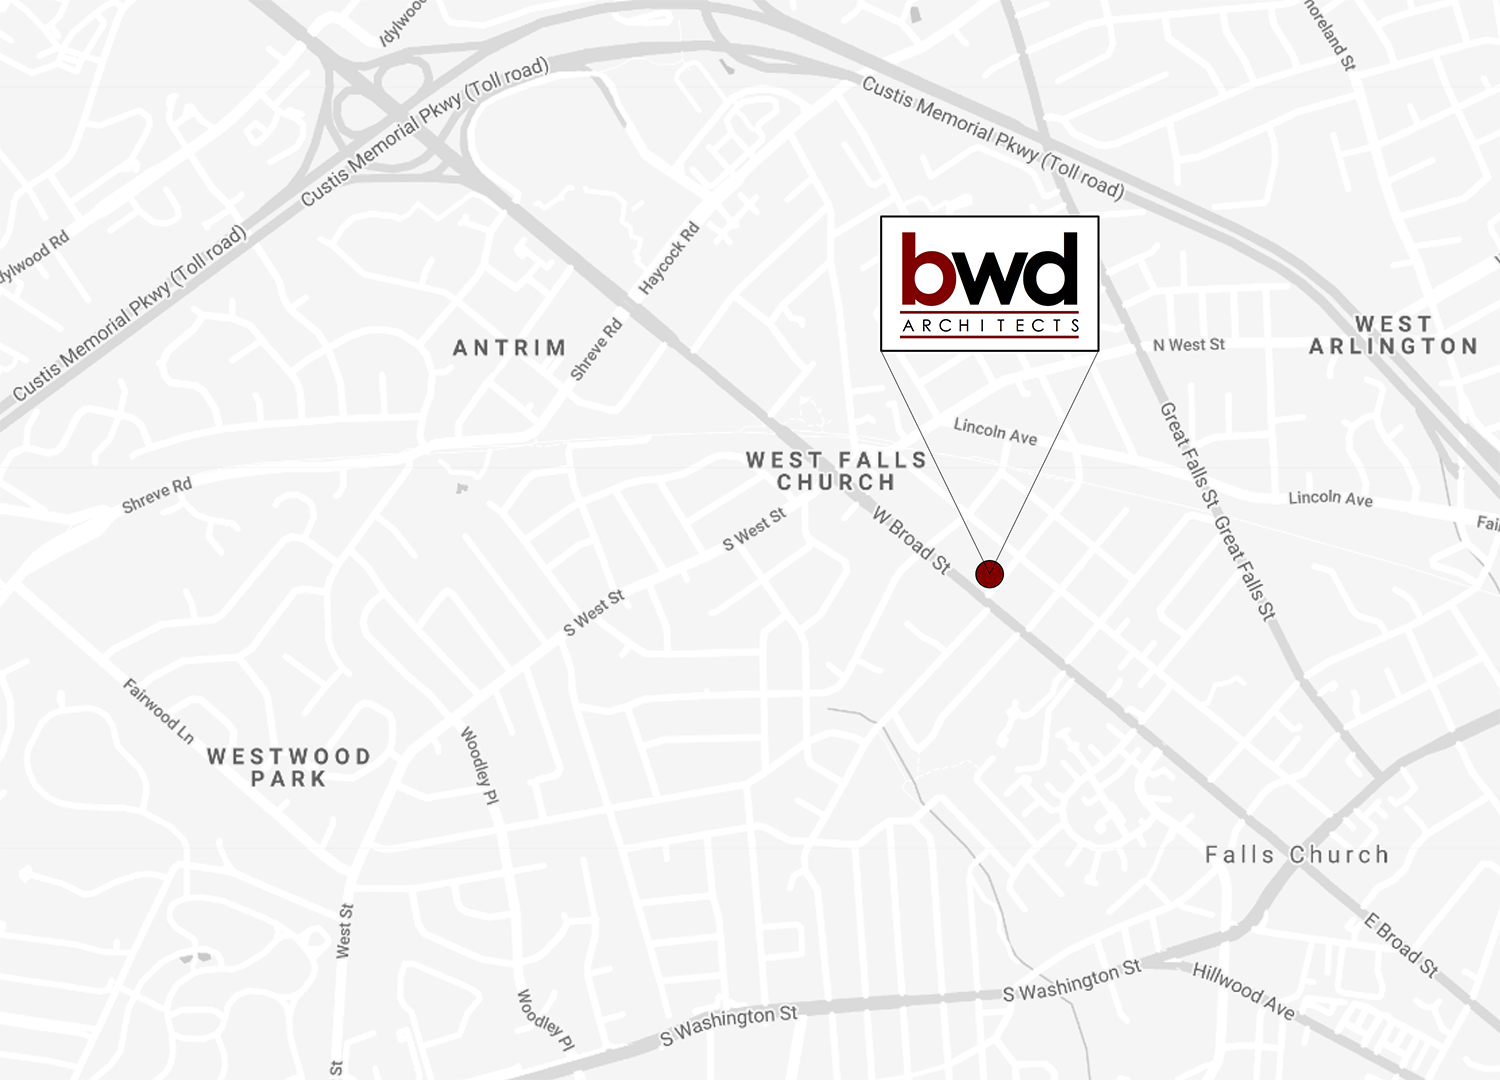 BWD Architects map